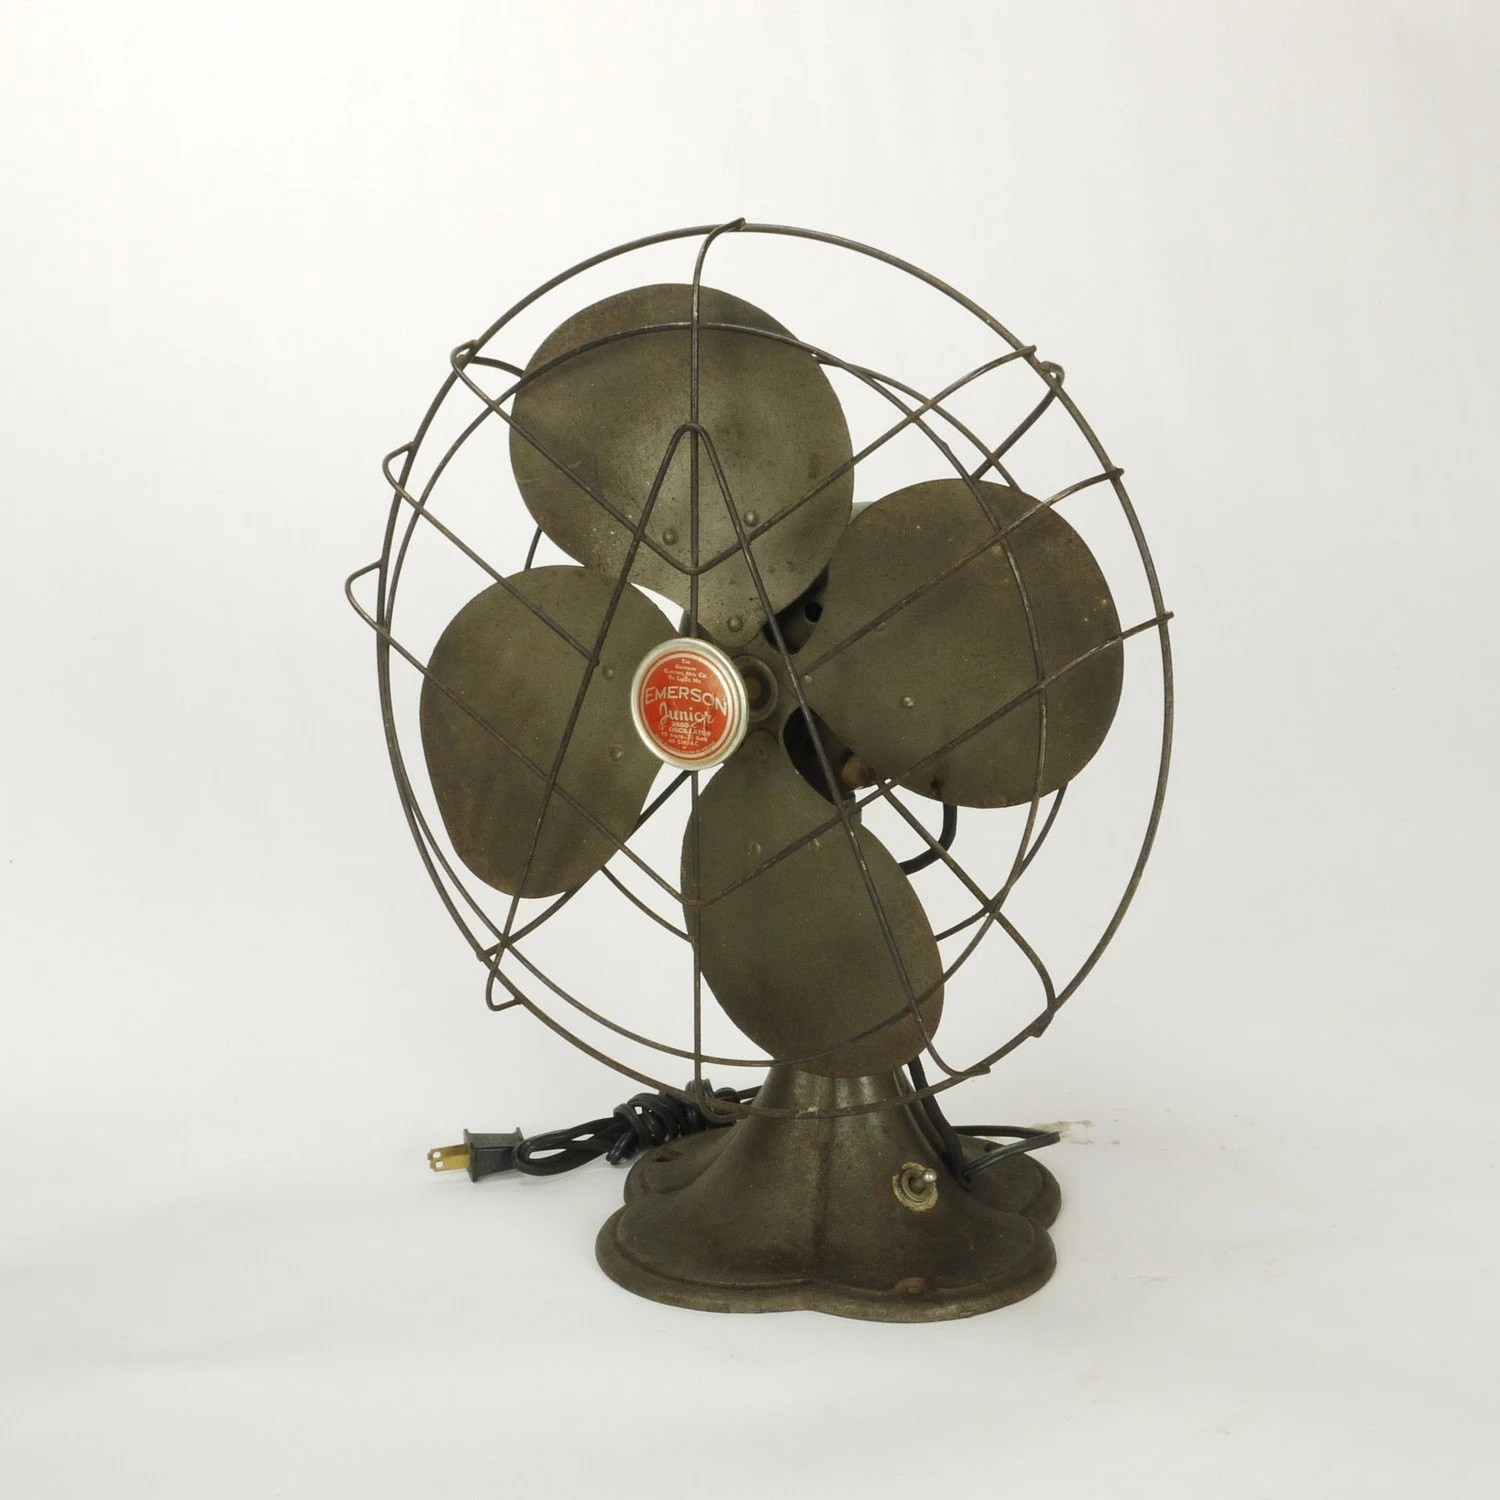 Wooden Electric Fan Vintage Emerson Jr 12 Inch Oscillating Electric By